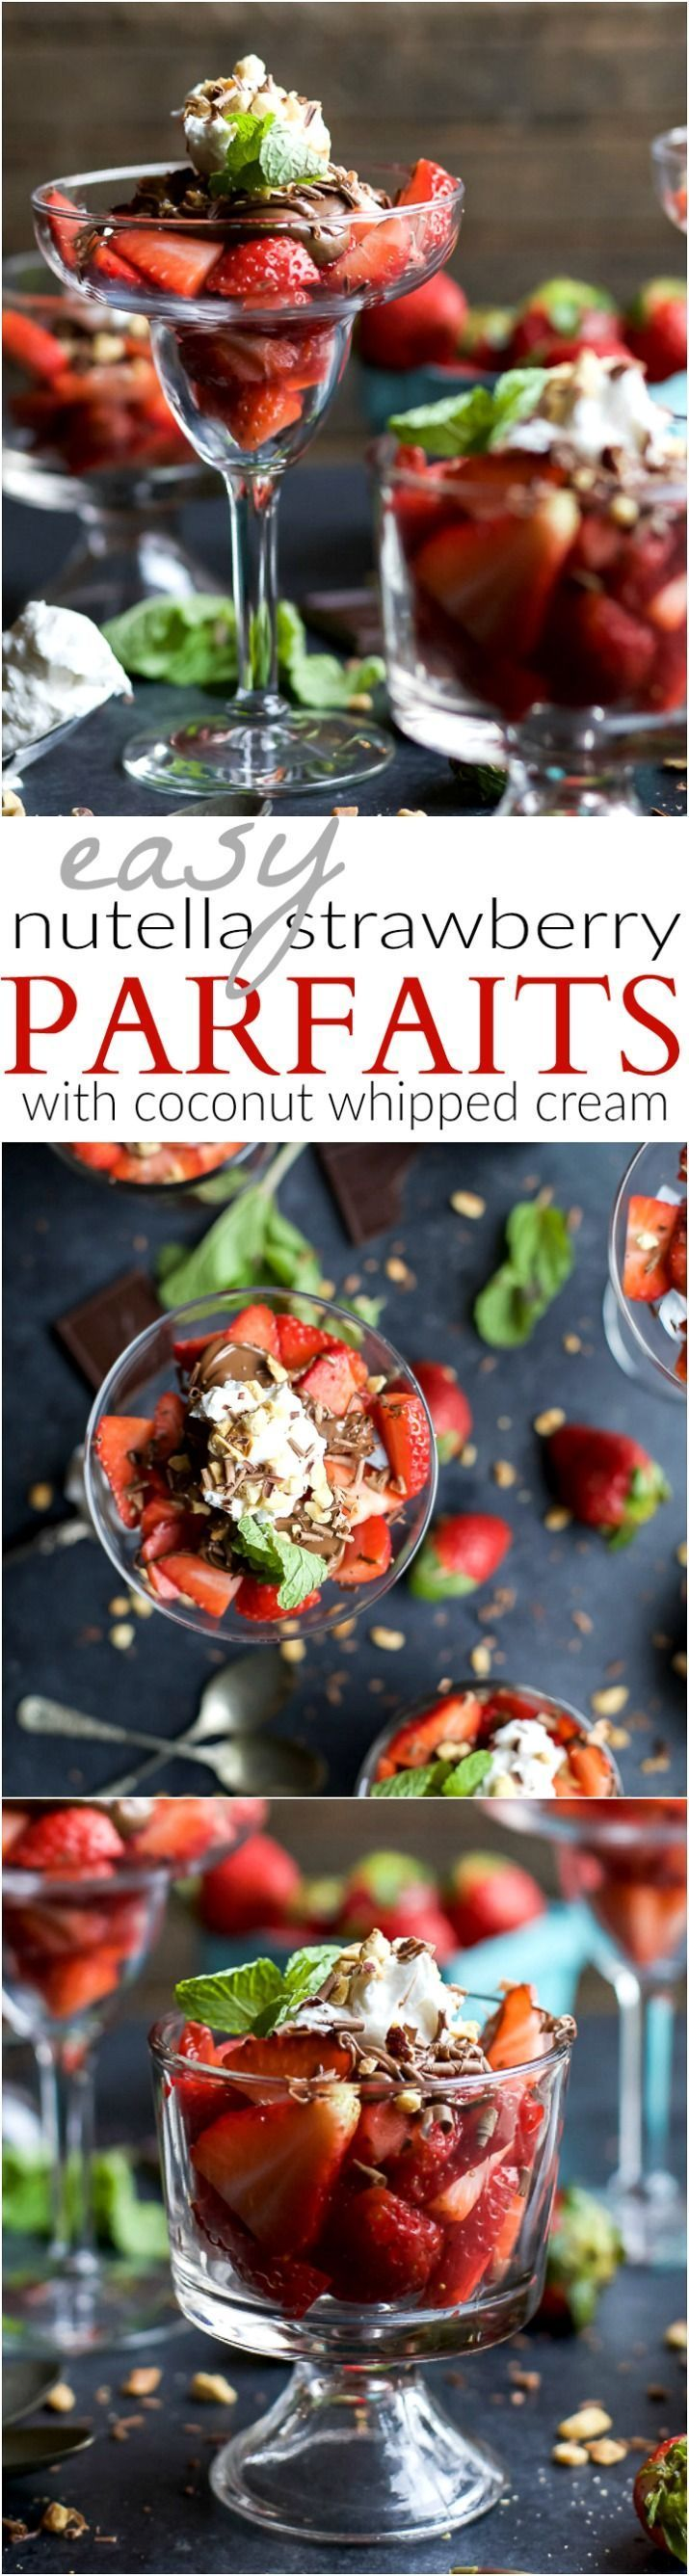 NUTELLA STRAWBERRY PARFAIT WITH COCONUT WHIPPED CREAM - an easy healthy dessert filled with fresh strawberries, drizzled with Nutella and Whipped Cream. The perfect Valentines Day dessert!   joyfulhealthyeats.com